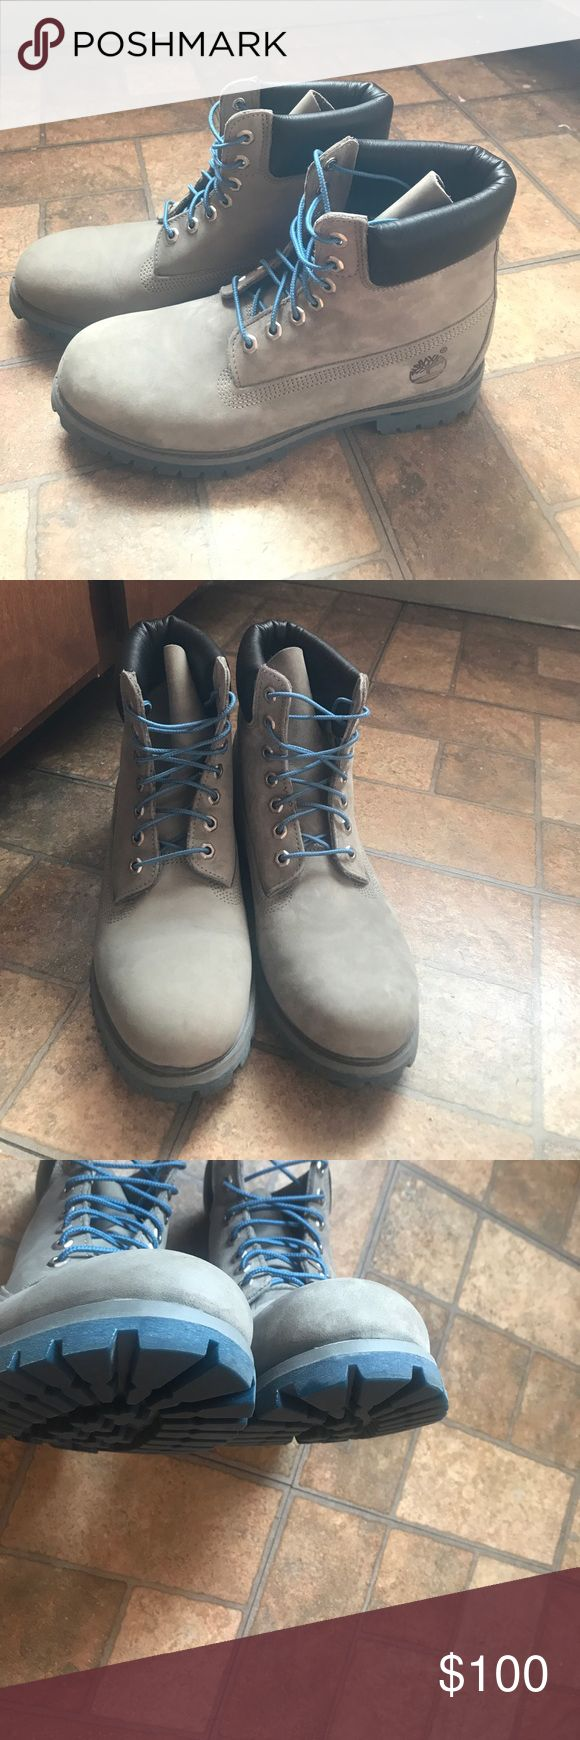 Timberland boots Gray timberland boots in perfect condition. Worn twice. Men's size  9.5 Timberland Shoes Boots